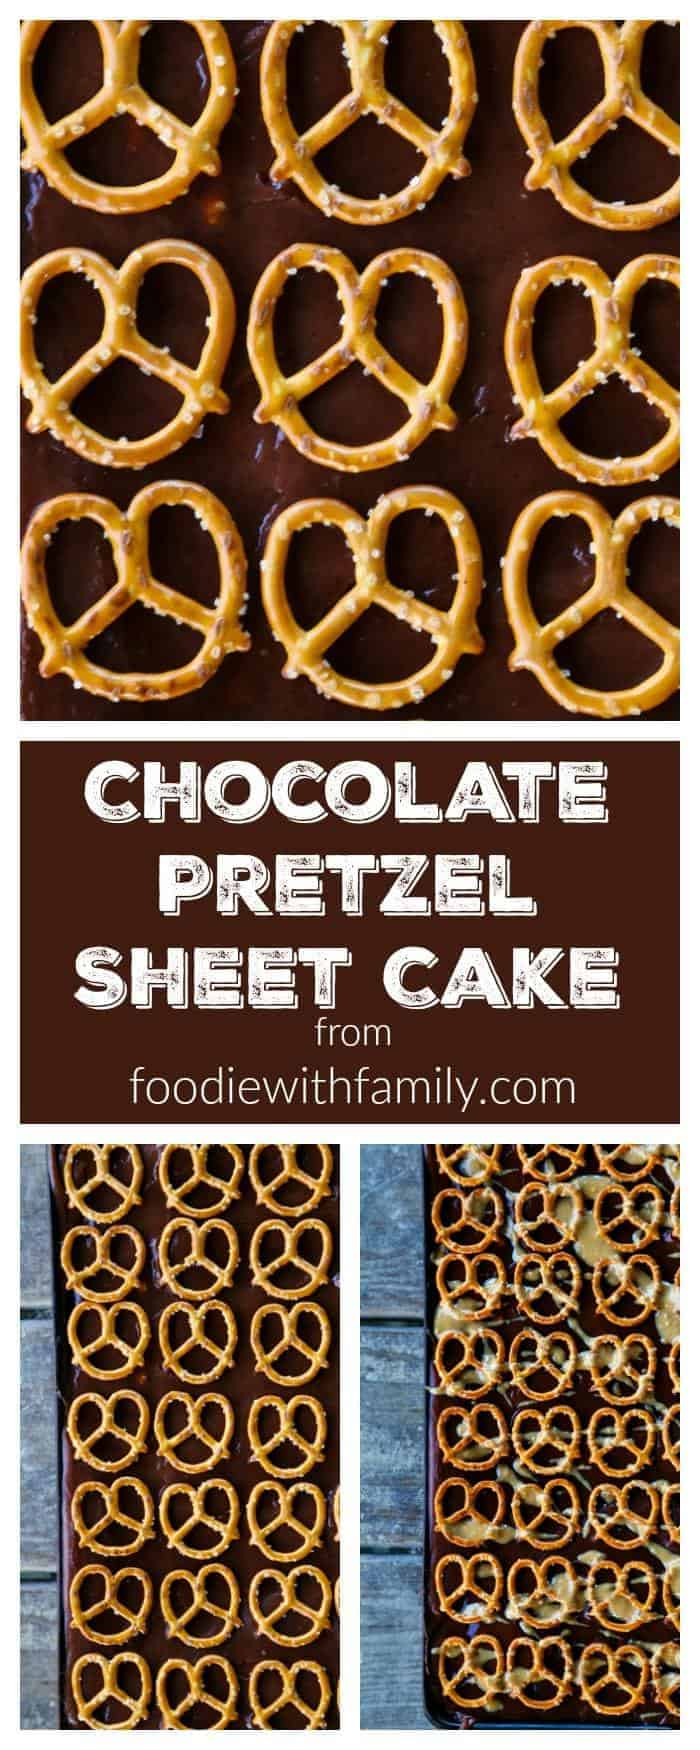 Chocolate Pretzel Sheet Cake with optional Peanut Butter Drizzle. So good.So so good. From foodiewithfamily.com